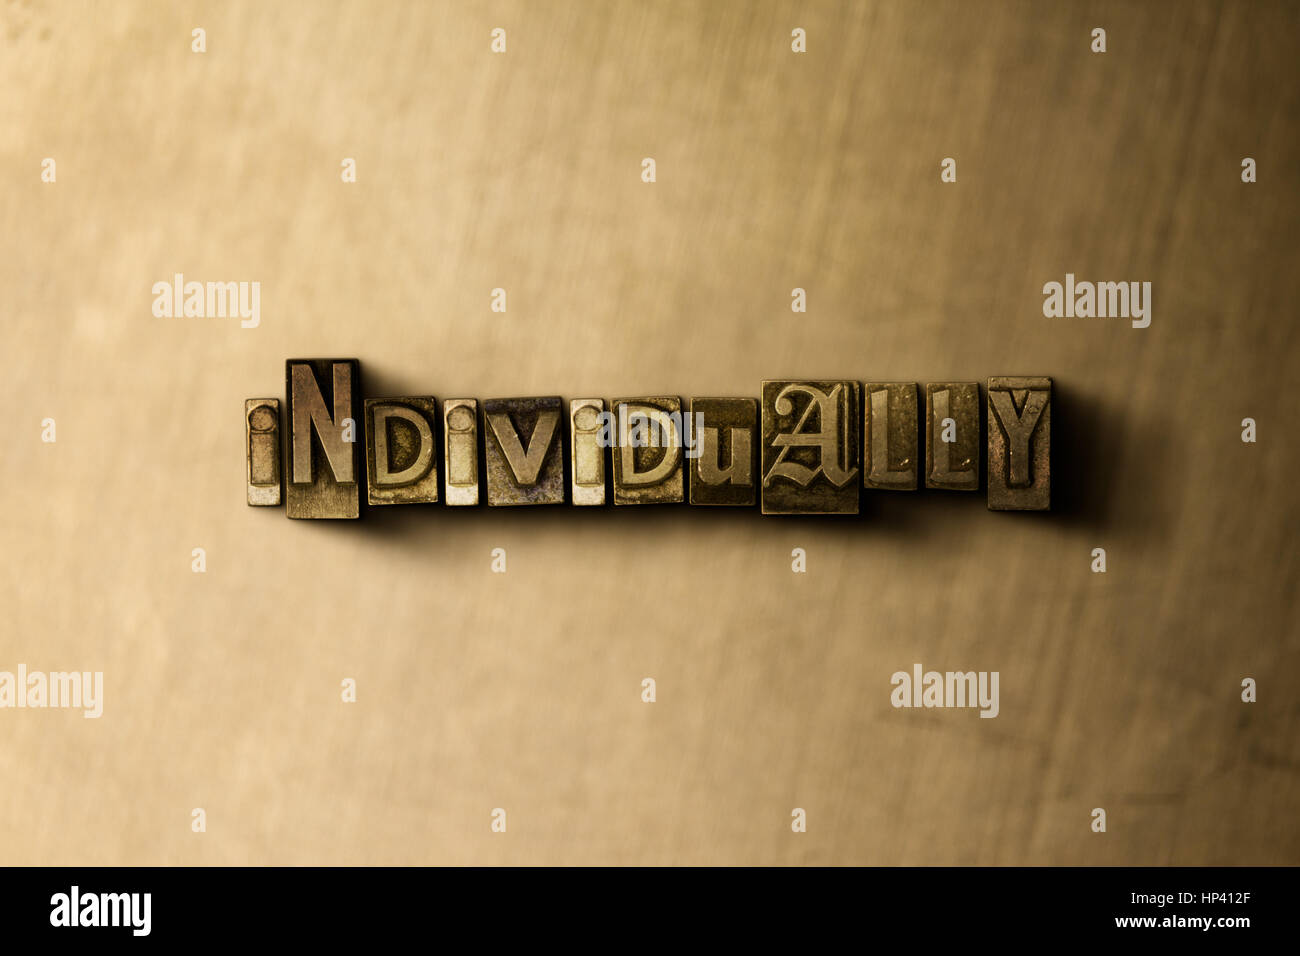 INDIVIDUALLY - close-up of grungy vintage typeset word on metal backdrop. Royalty free stock illustration.  Can - Stock Image